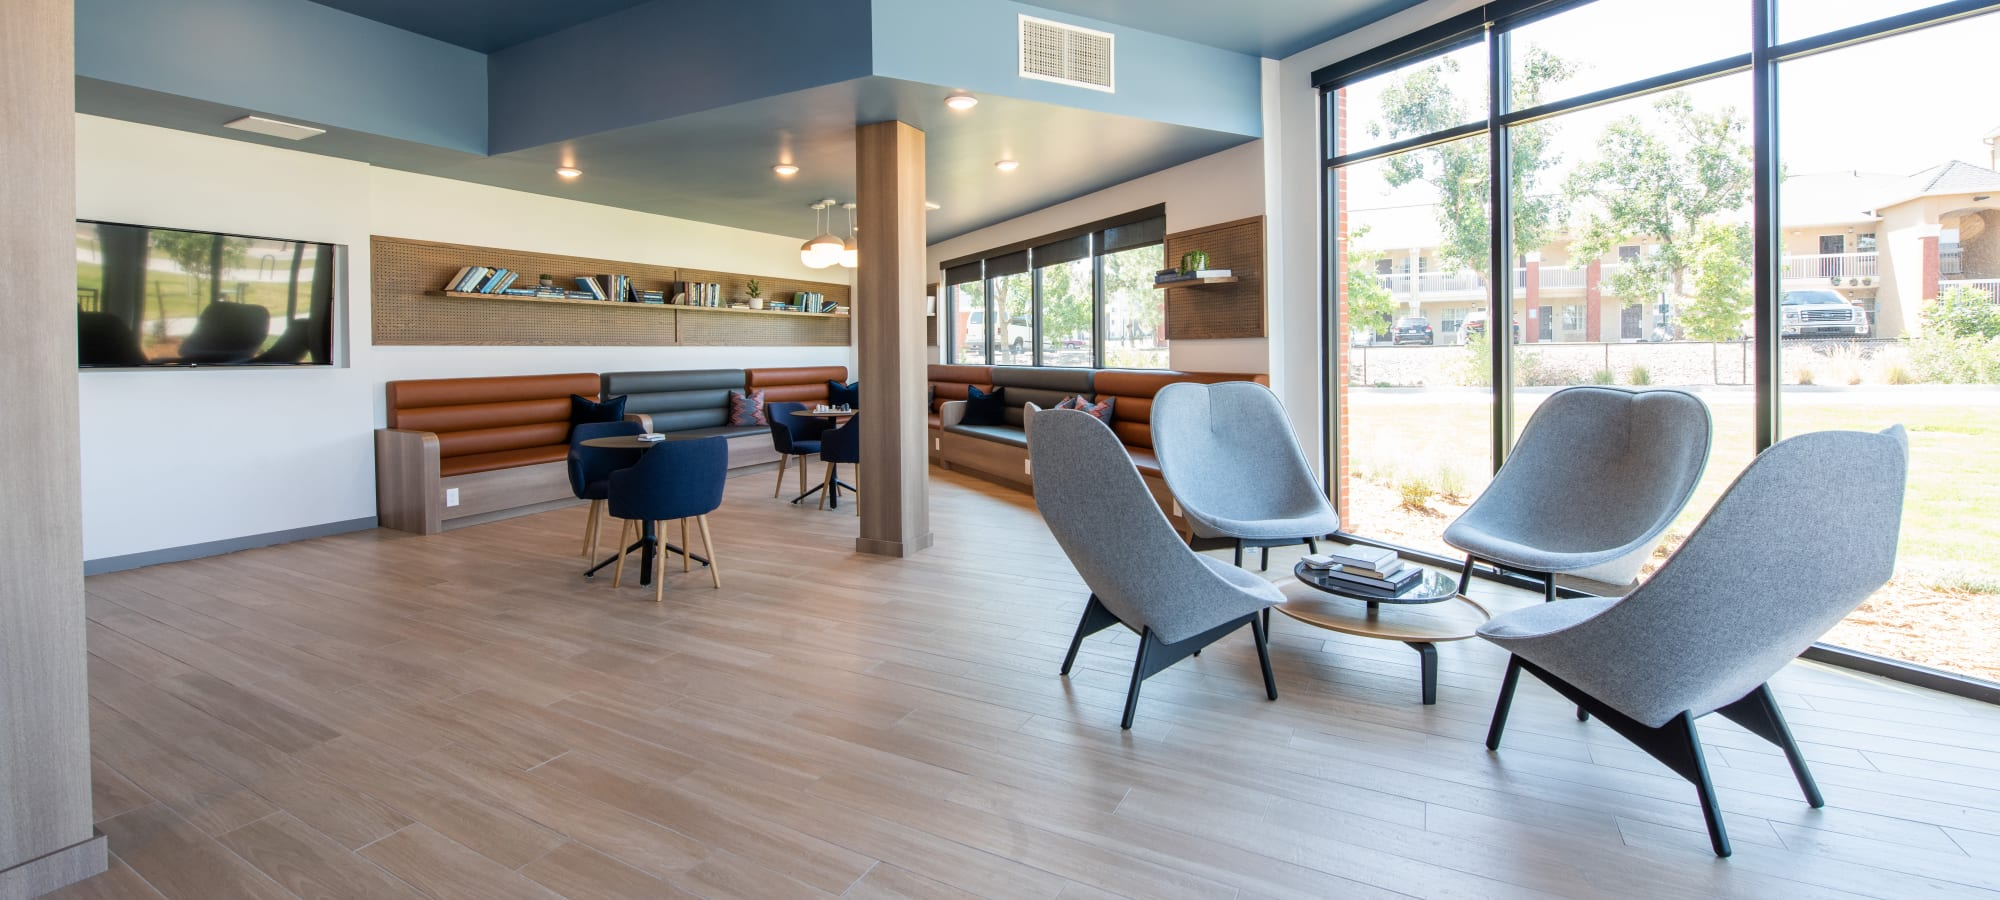 Gallery of photos for Marq Iliff Station in Aurora, Colorado